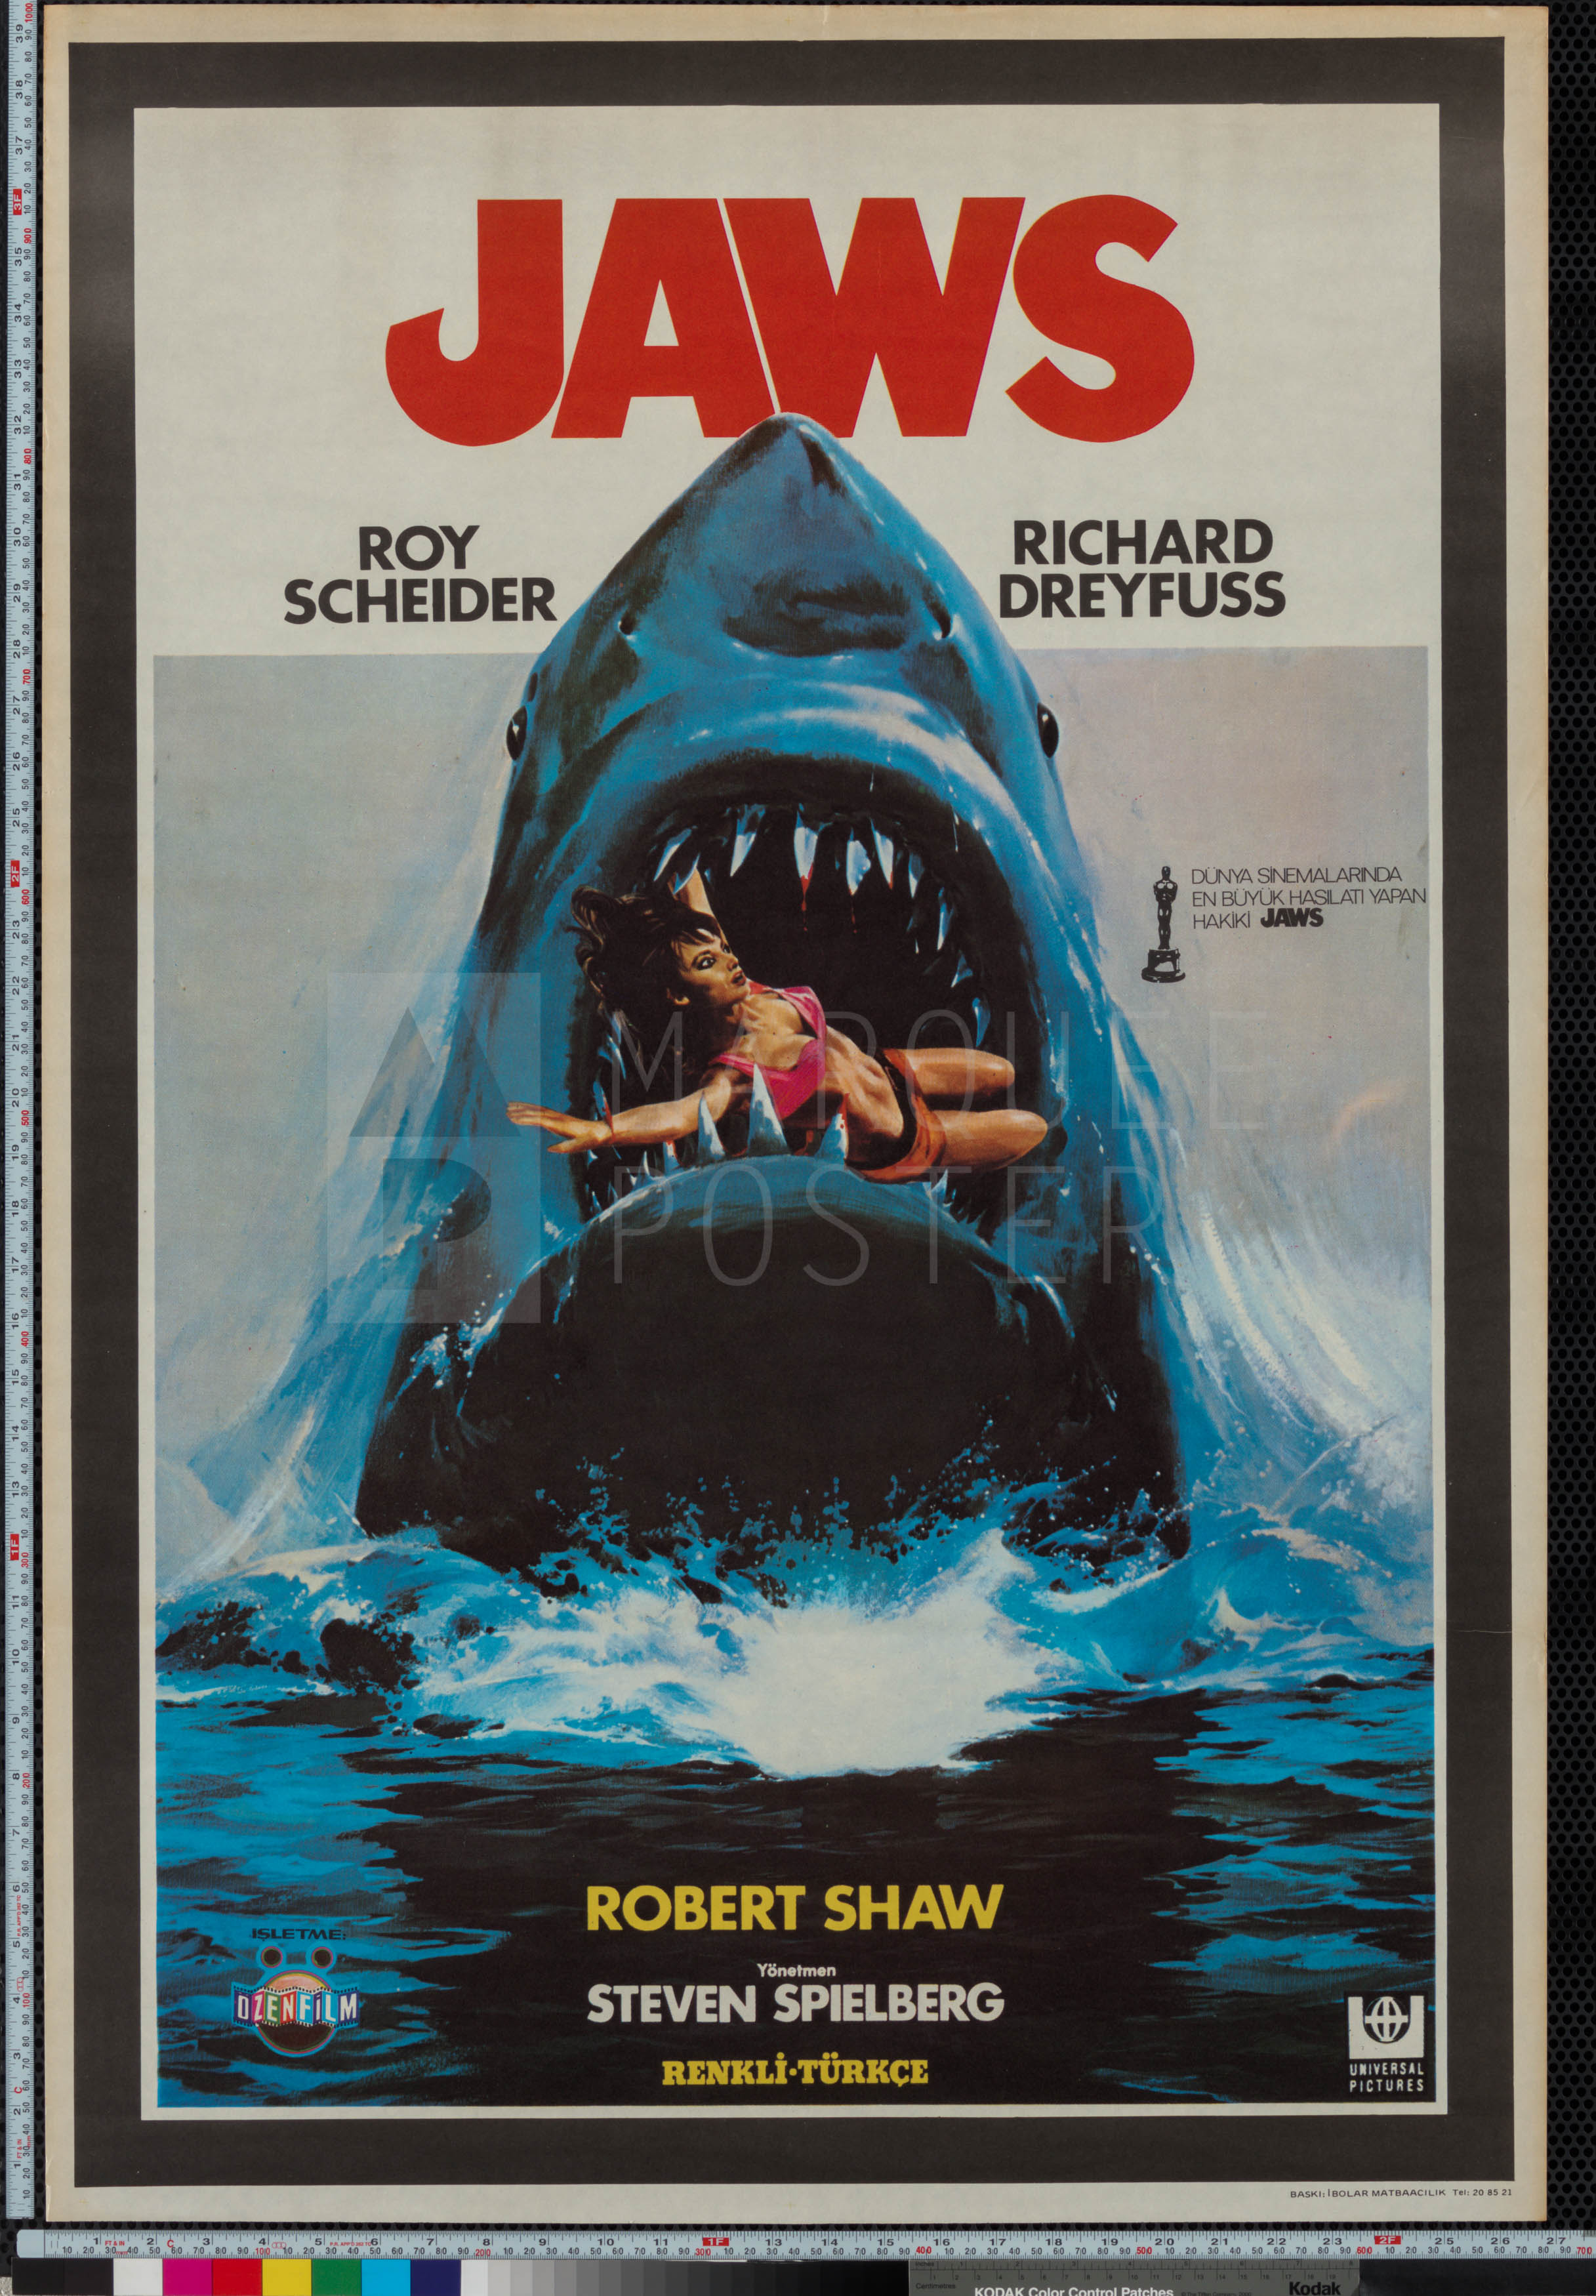 10-jaws-turkish-b1-1981-02